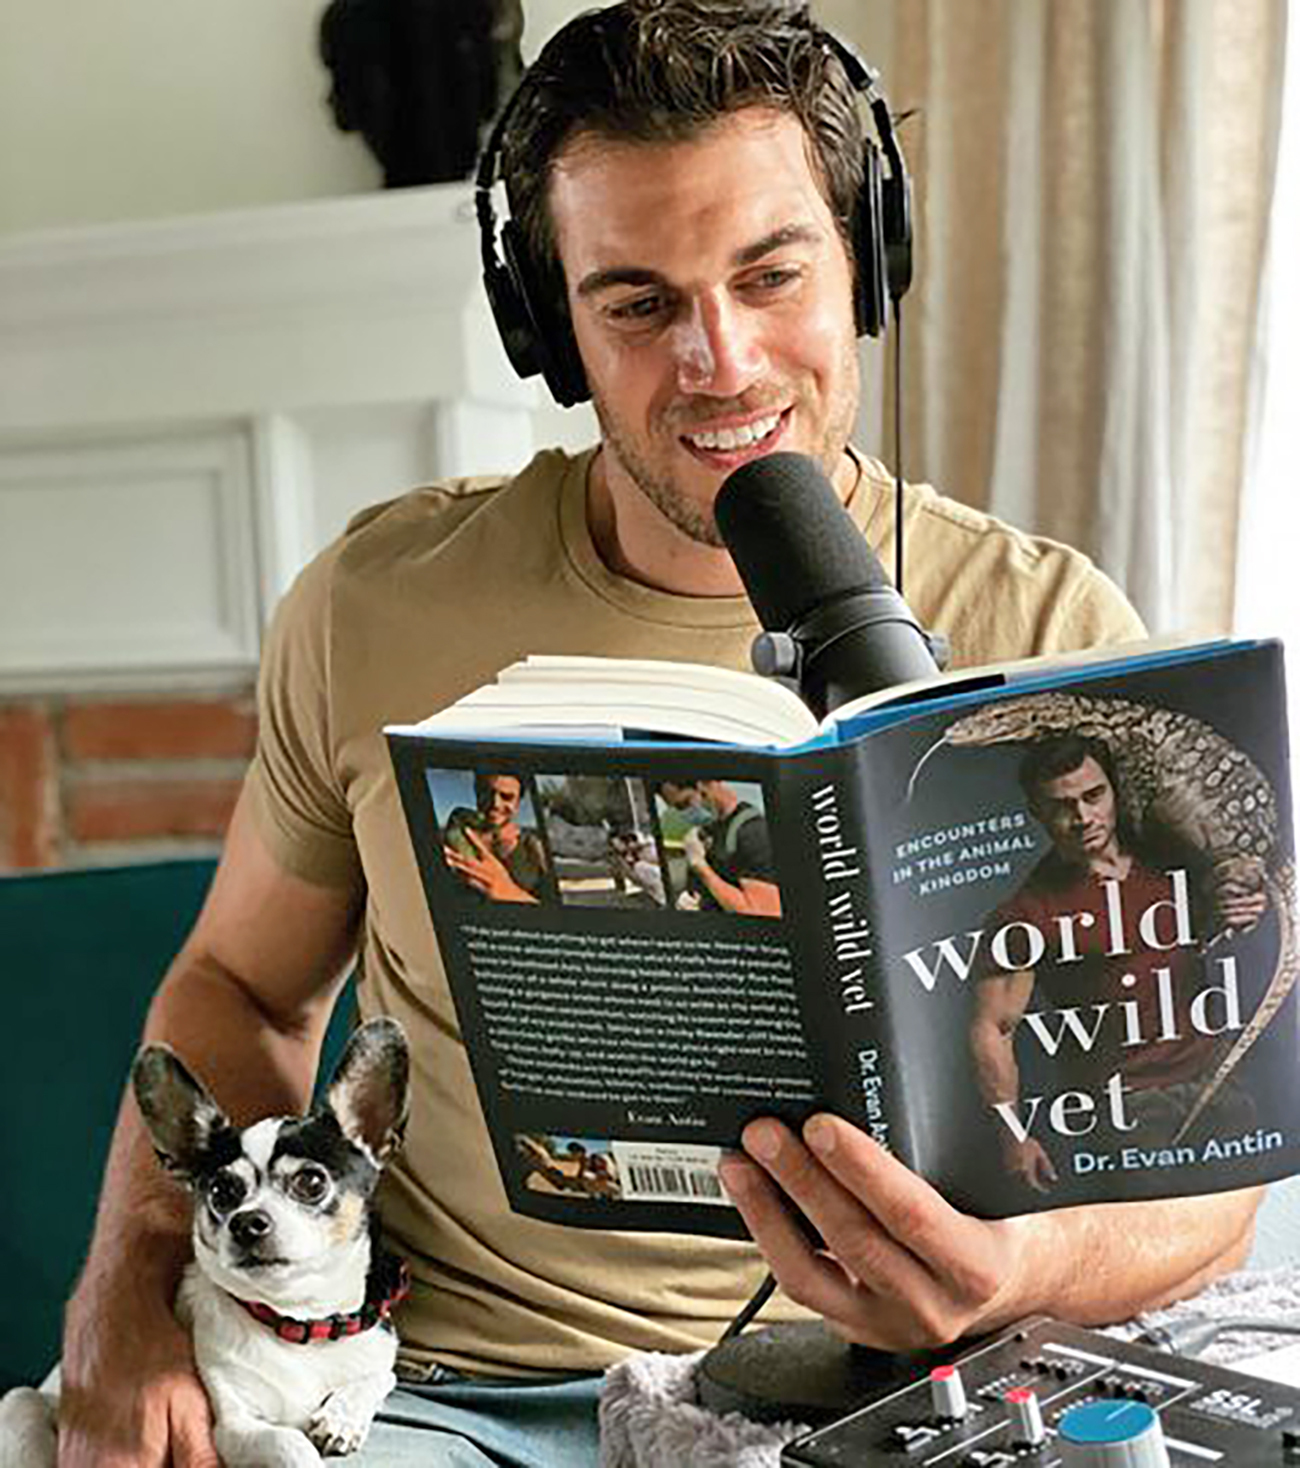 Dr. Evan Antin records audiobook for World Wide Vet